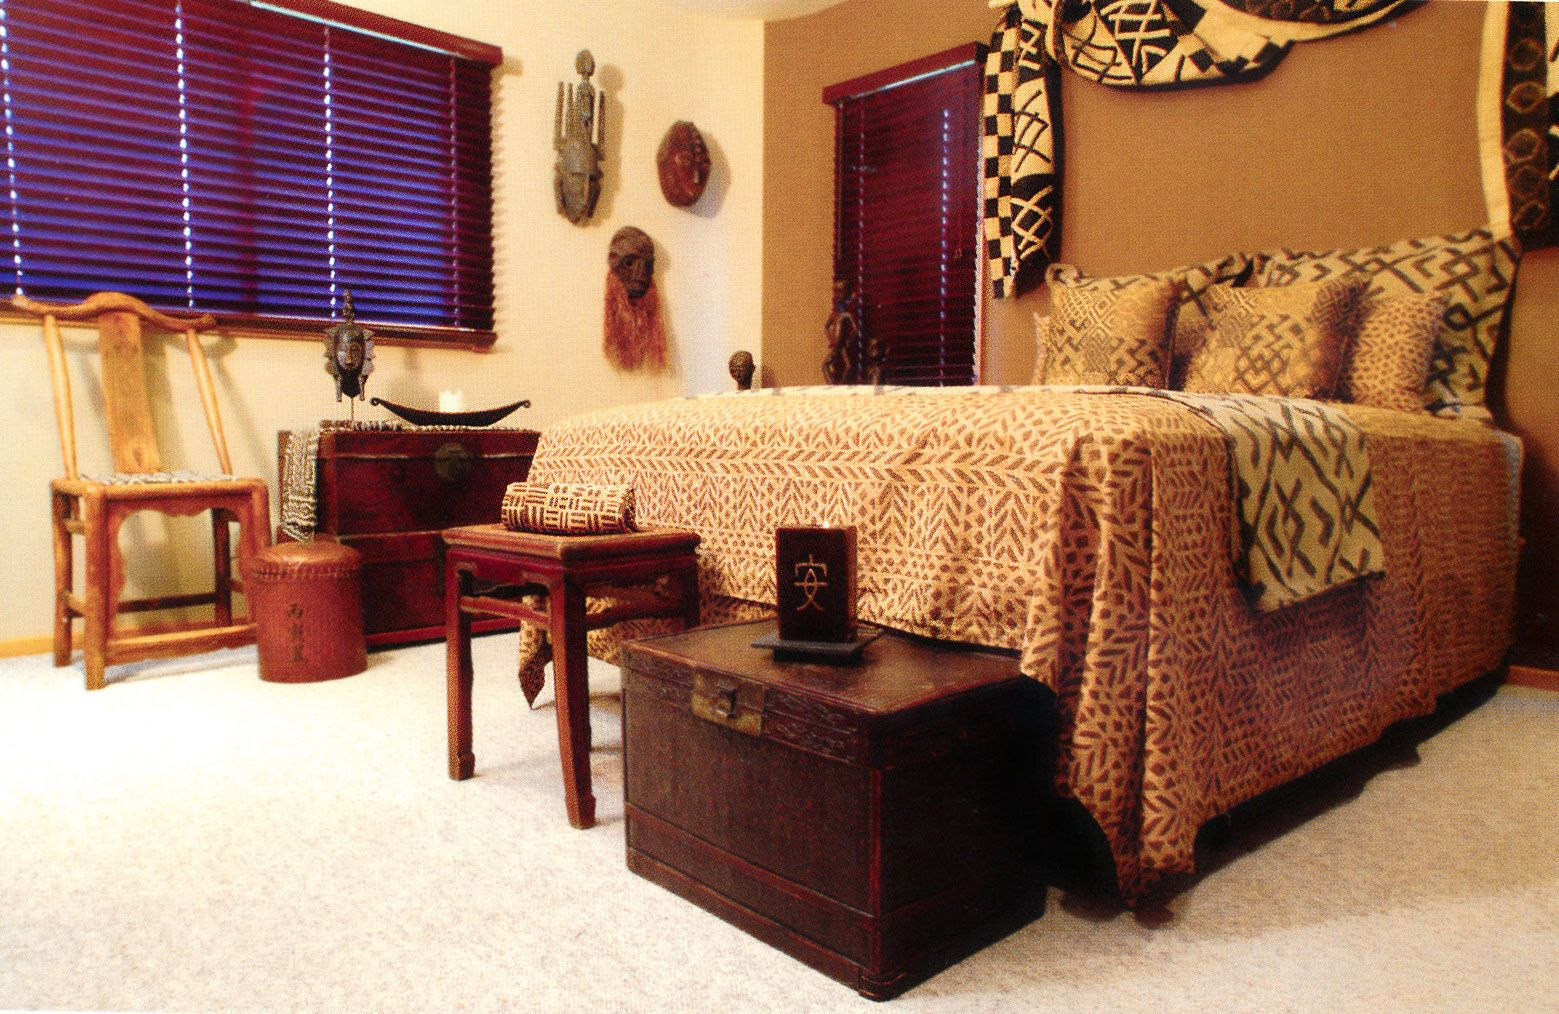 1000 Images About African Theme Decor On Pinterest Mantles